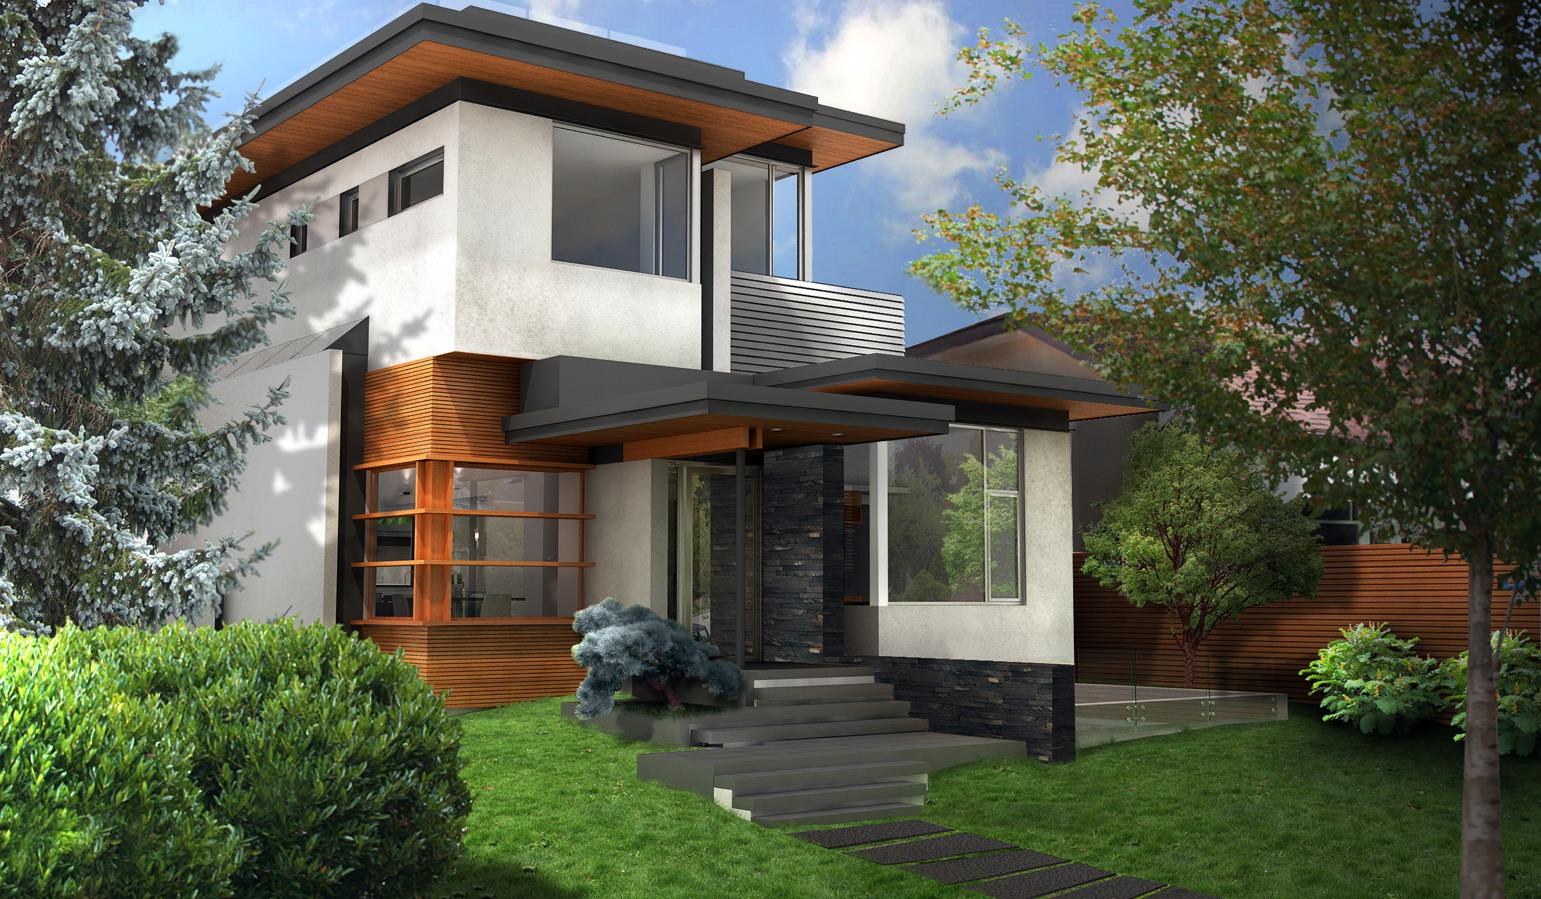 green house exterior rendering day time